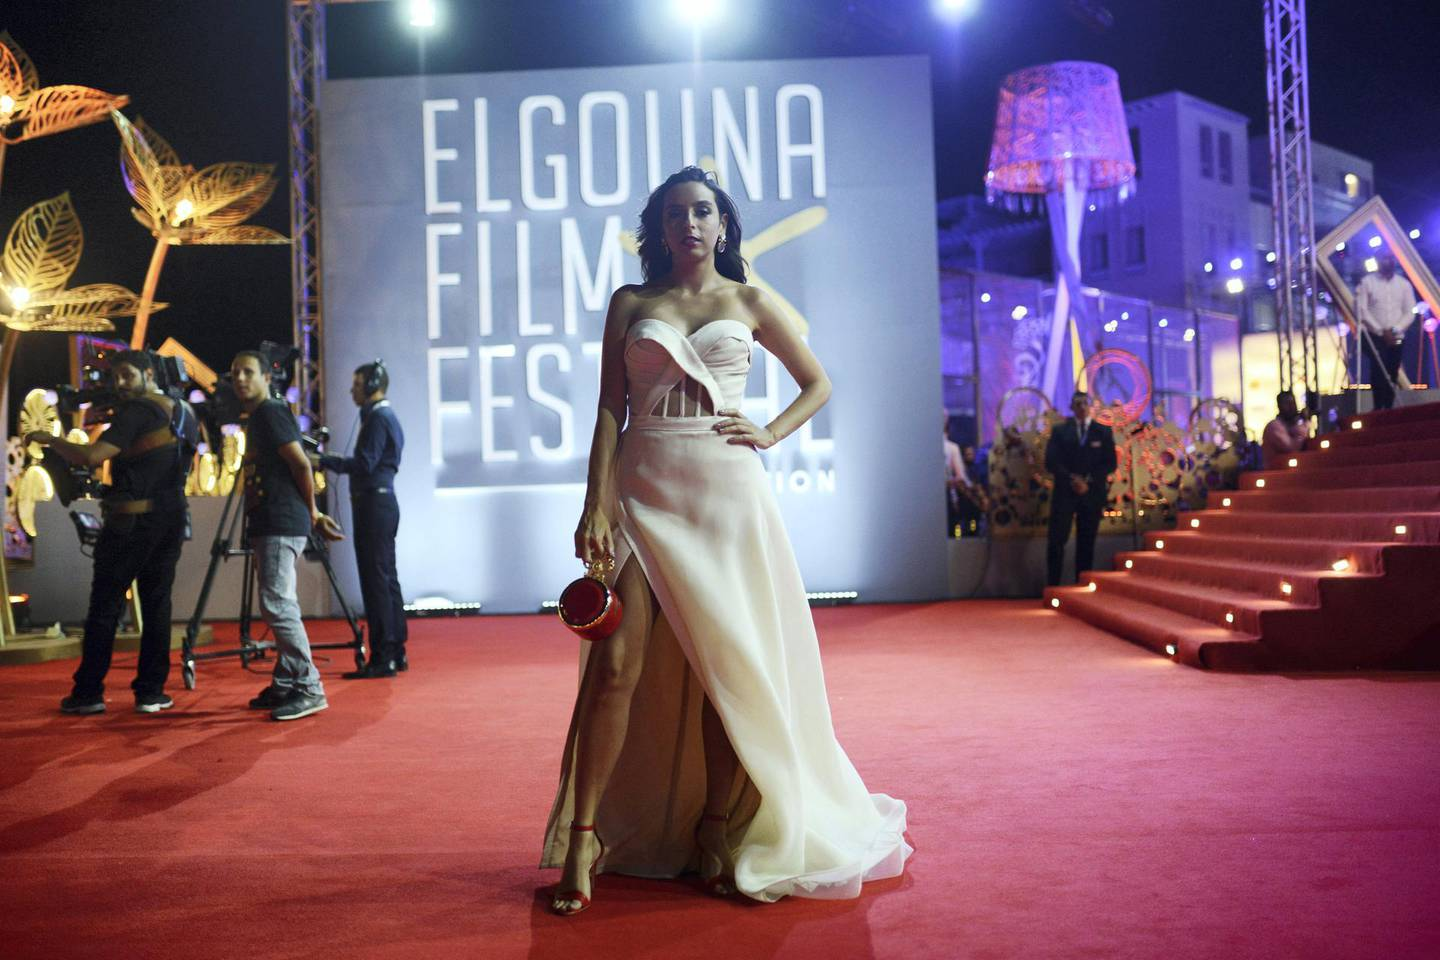 HURGHADA, EGYPT - SEPTEMBER 28: Egyptian actress Sarrah Abdelrahman poses for a photo on the red carpet at the closing ceremony of the 2nd El Gouna Film Festival on September 28, 2018 in Hurghada, Egypt. This is the 2nd year of the El Gouna Film Festival held on the Red Sea. It runs from the 20th to the 28th September 2018 (Photo by Jonathan Rashad/Getty Images)